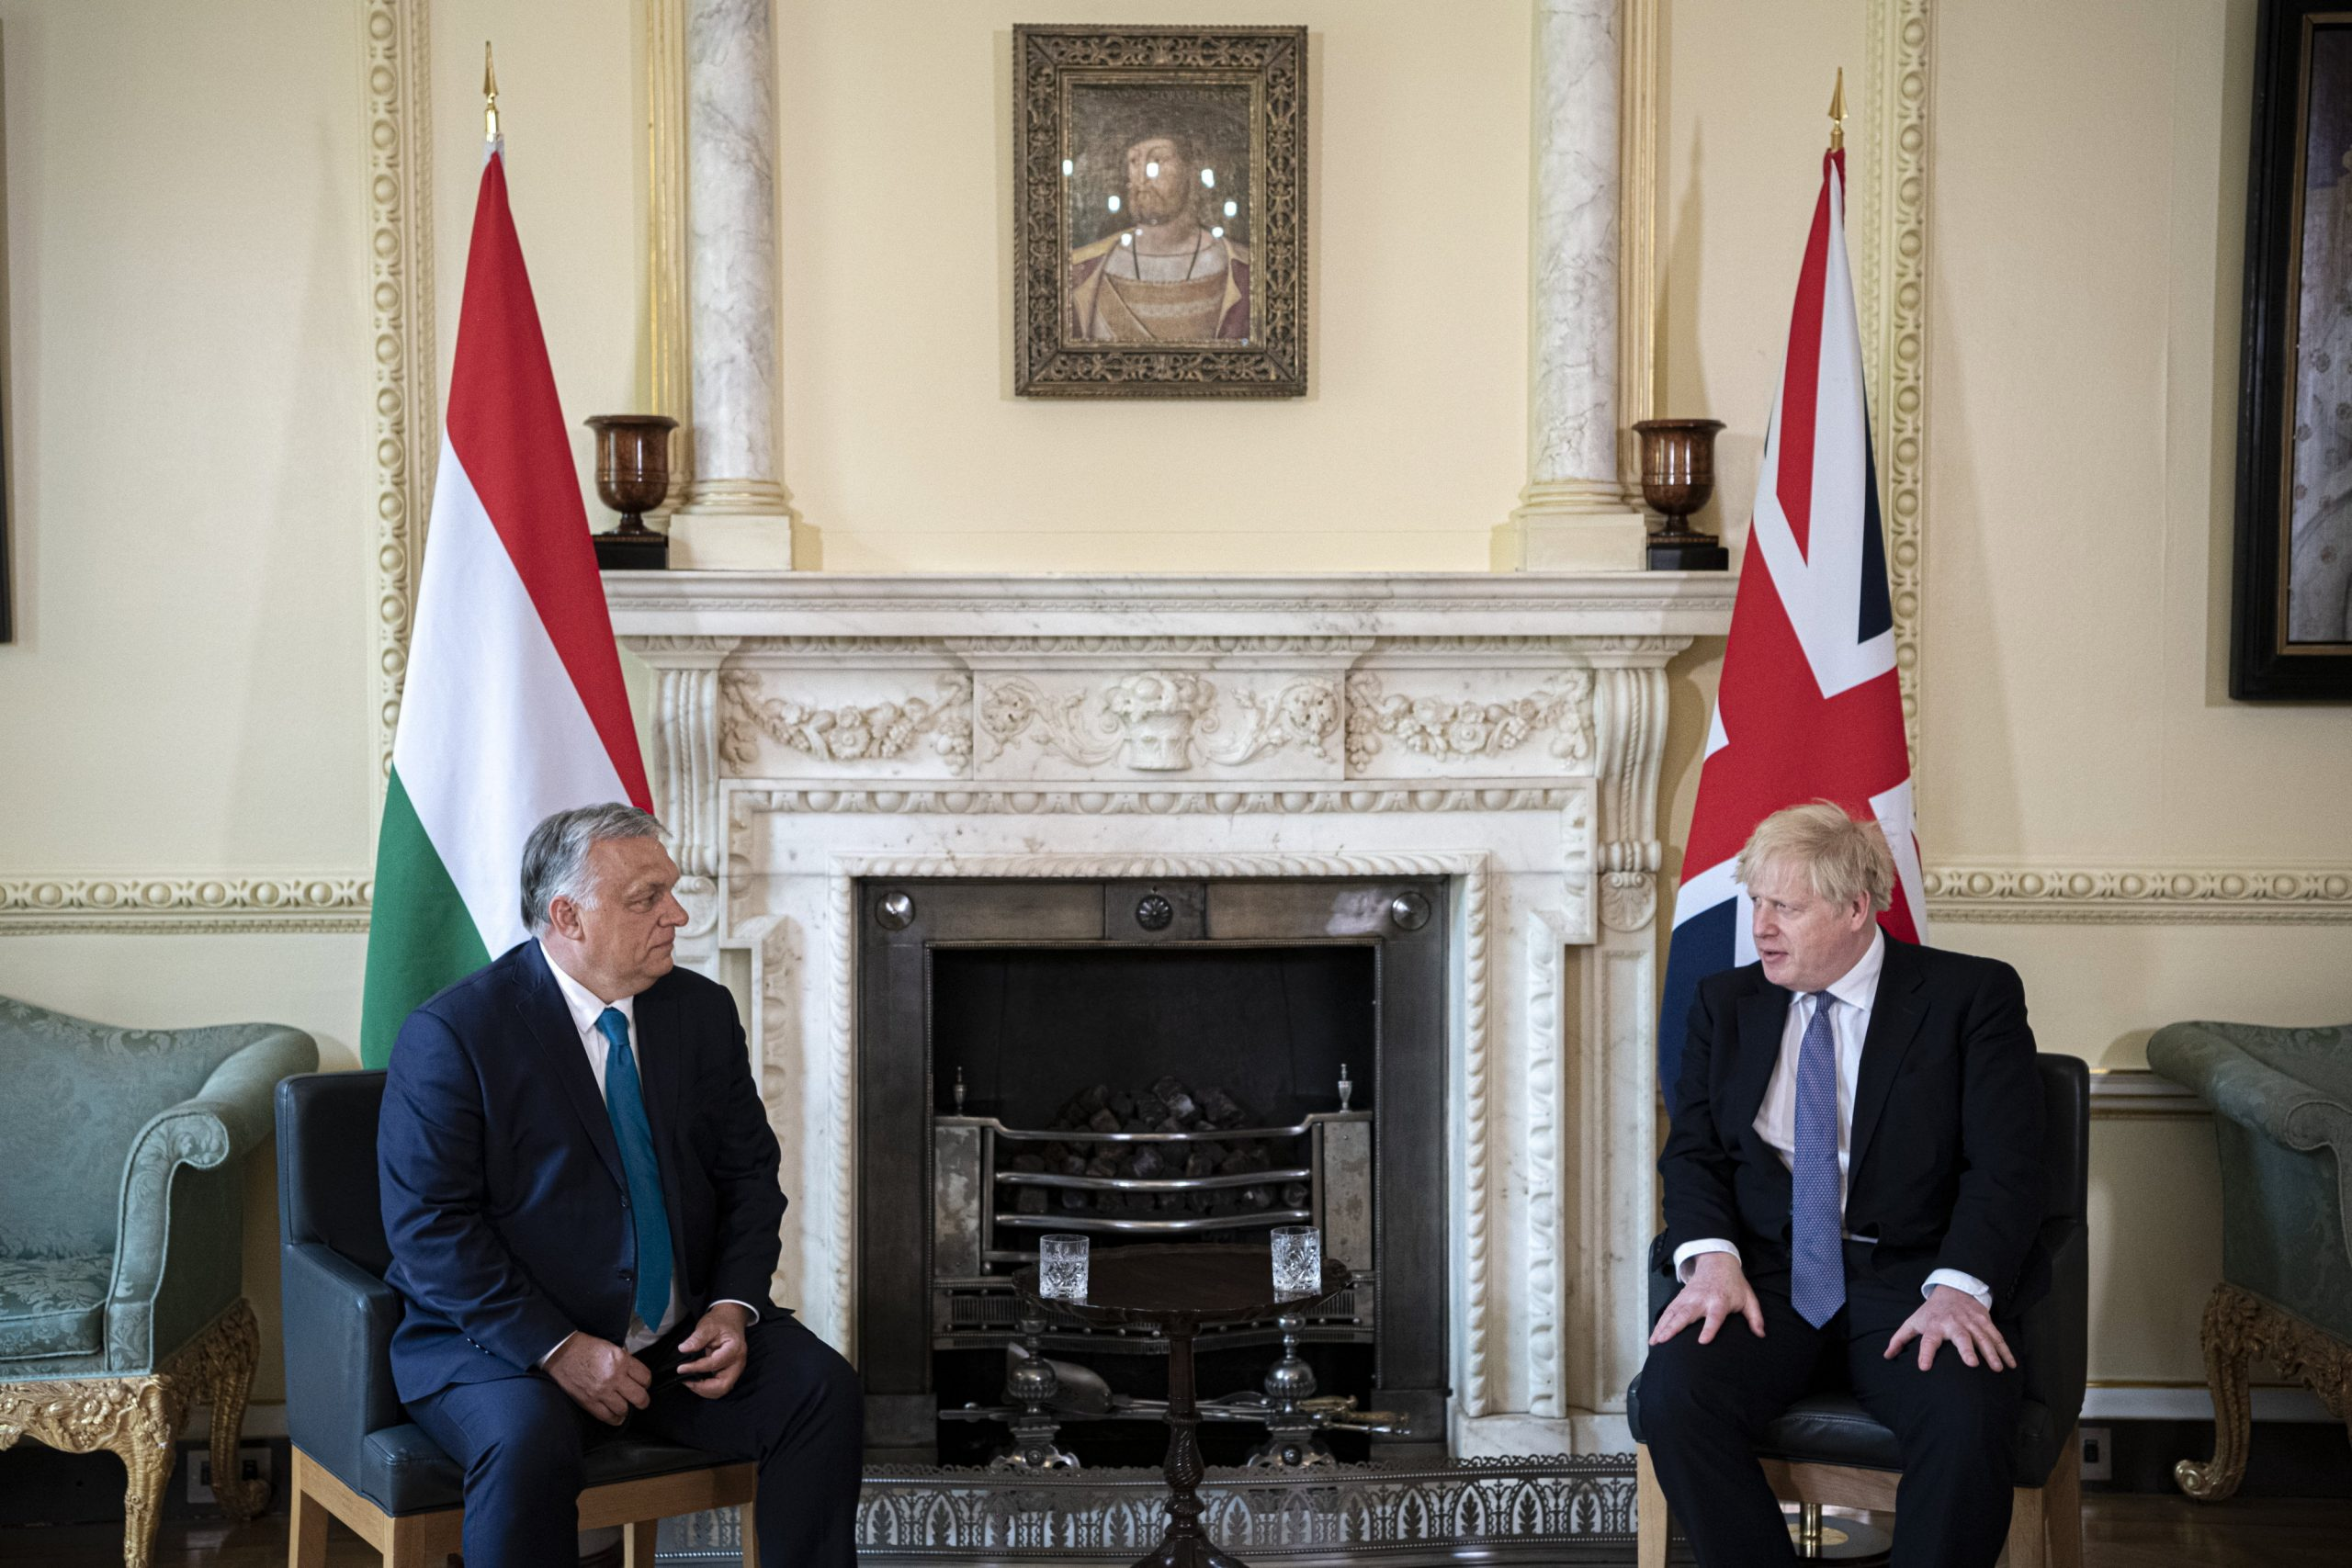 Orbán-Johnson meeting: Hungary aims to map post-Brexit cooperation with UK